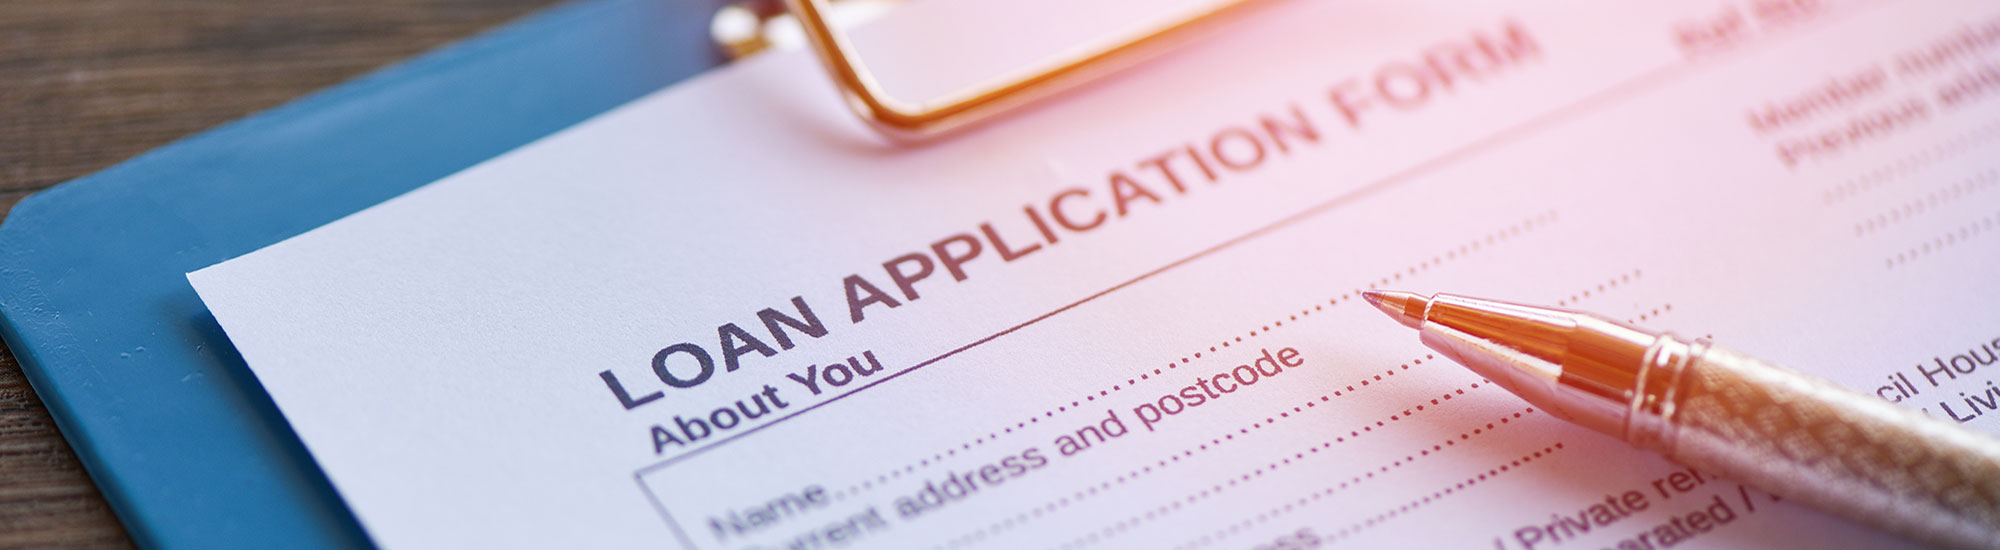 close-up of loan application form and pen